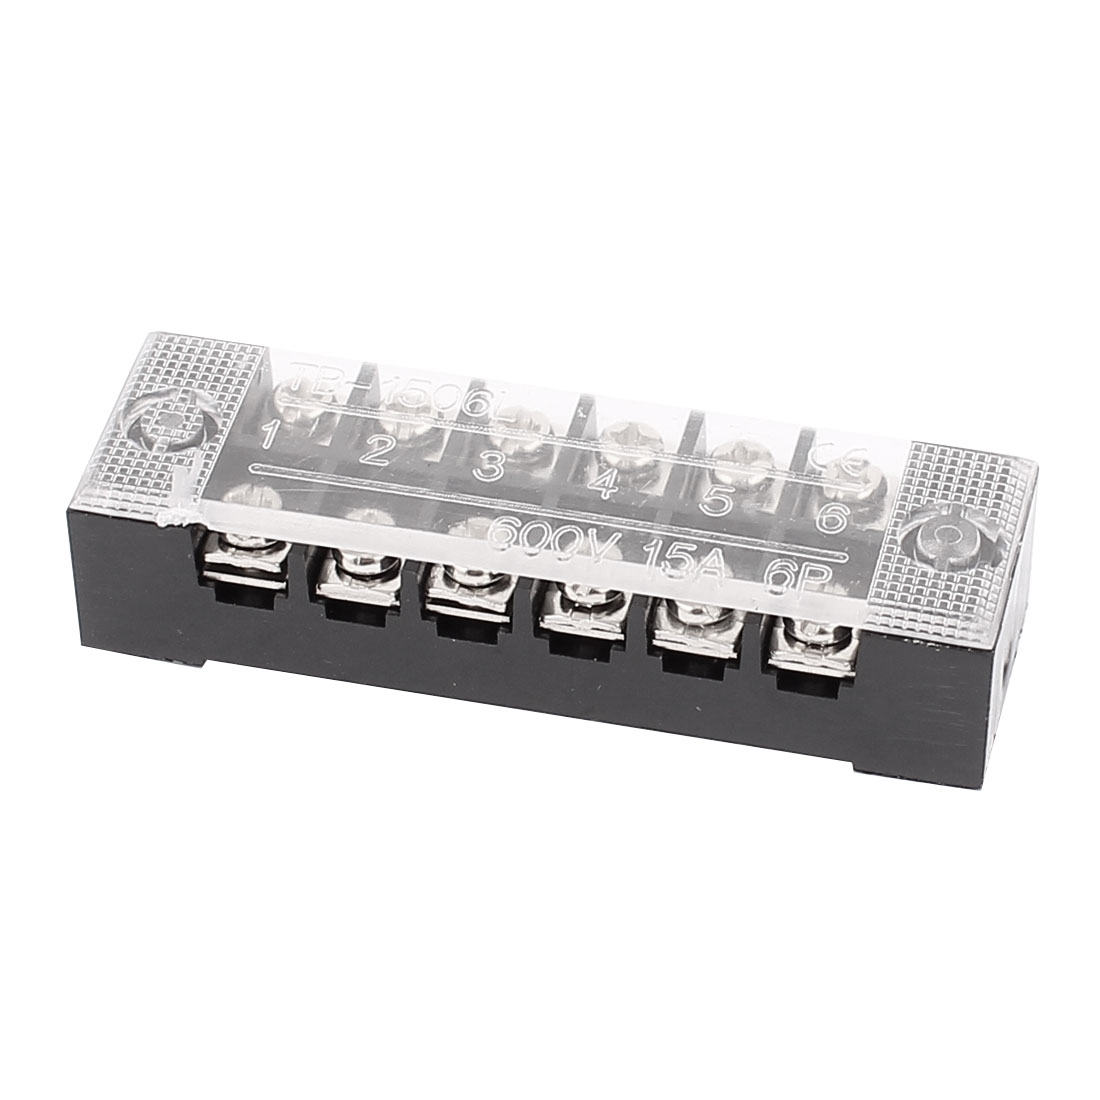 600V 15A 6P Dual Row Electric Barrier Terminal Block Cable Connector Bar